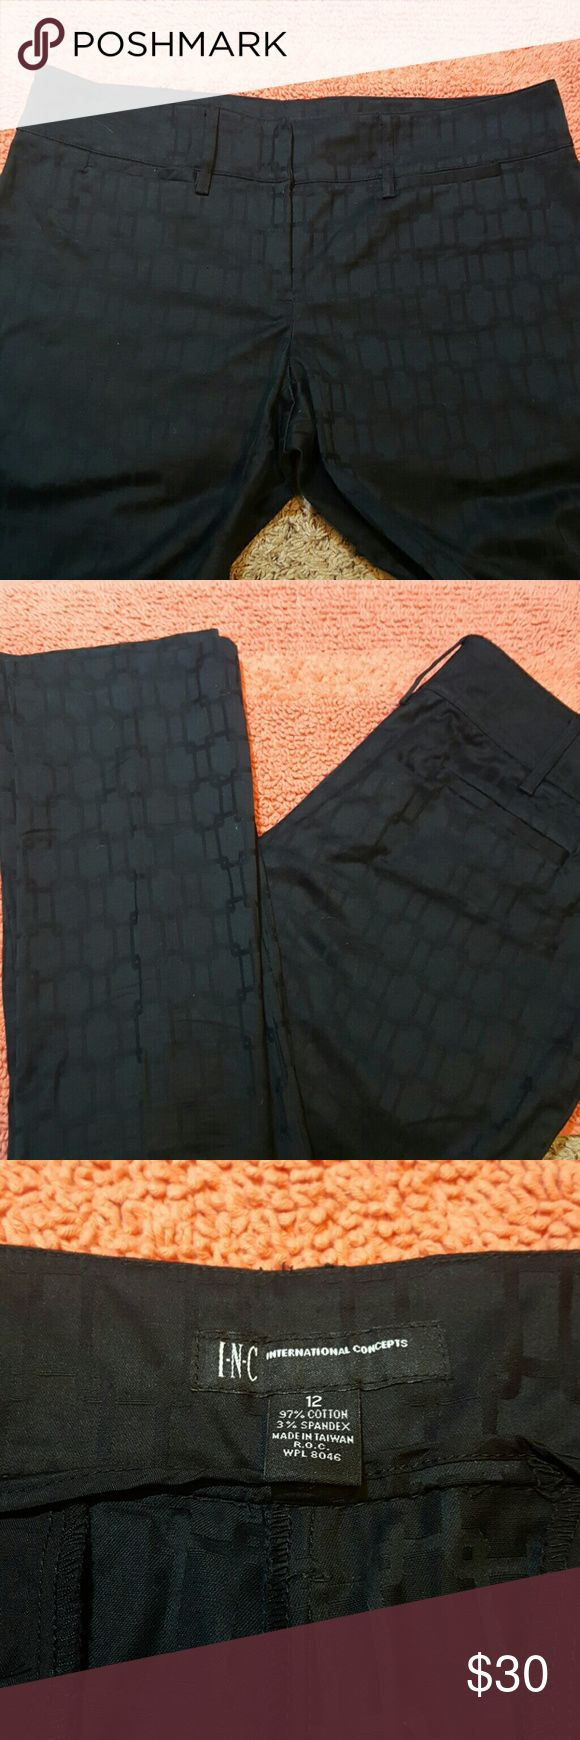 """$15 SALE ❤INC Black Dress Pants Beautiful dress pants. Has an embossed look design within the fabric. Small pockets in front. Flat pockets on rear. Straight leg, tailored look.  97% Cotton  3%Spandex  J1A  Unstretched Flat Measurements  Waist 17.5"""" Rise 9"""" Inseam 31"""" INC International Concepts Pants Straight Leg"""